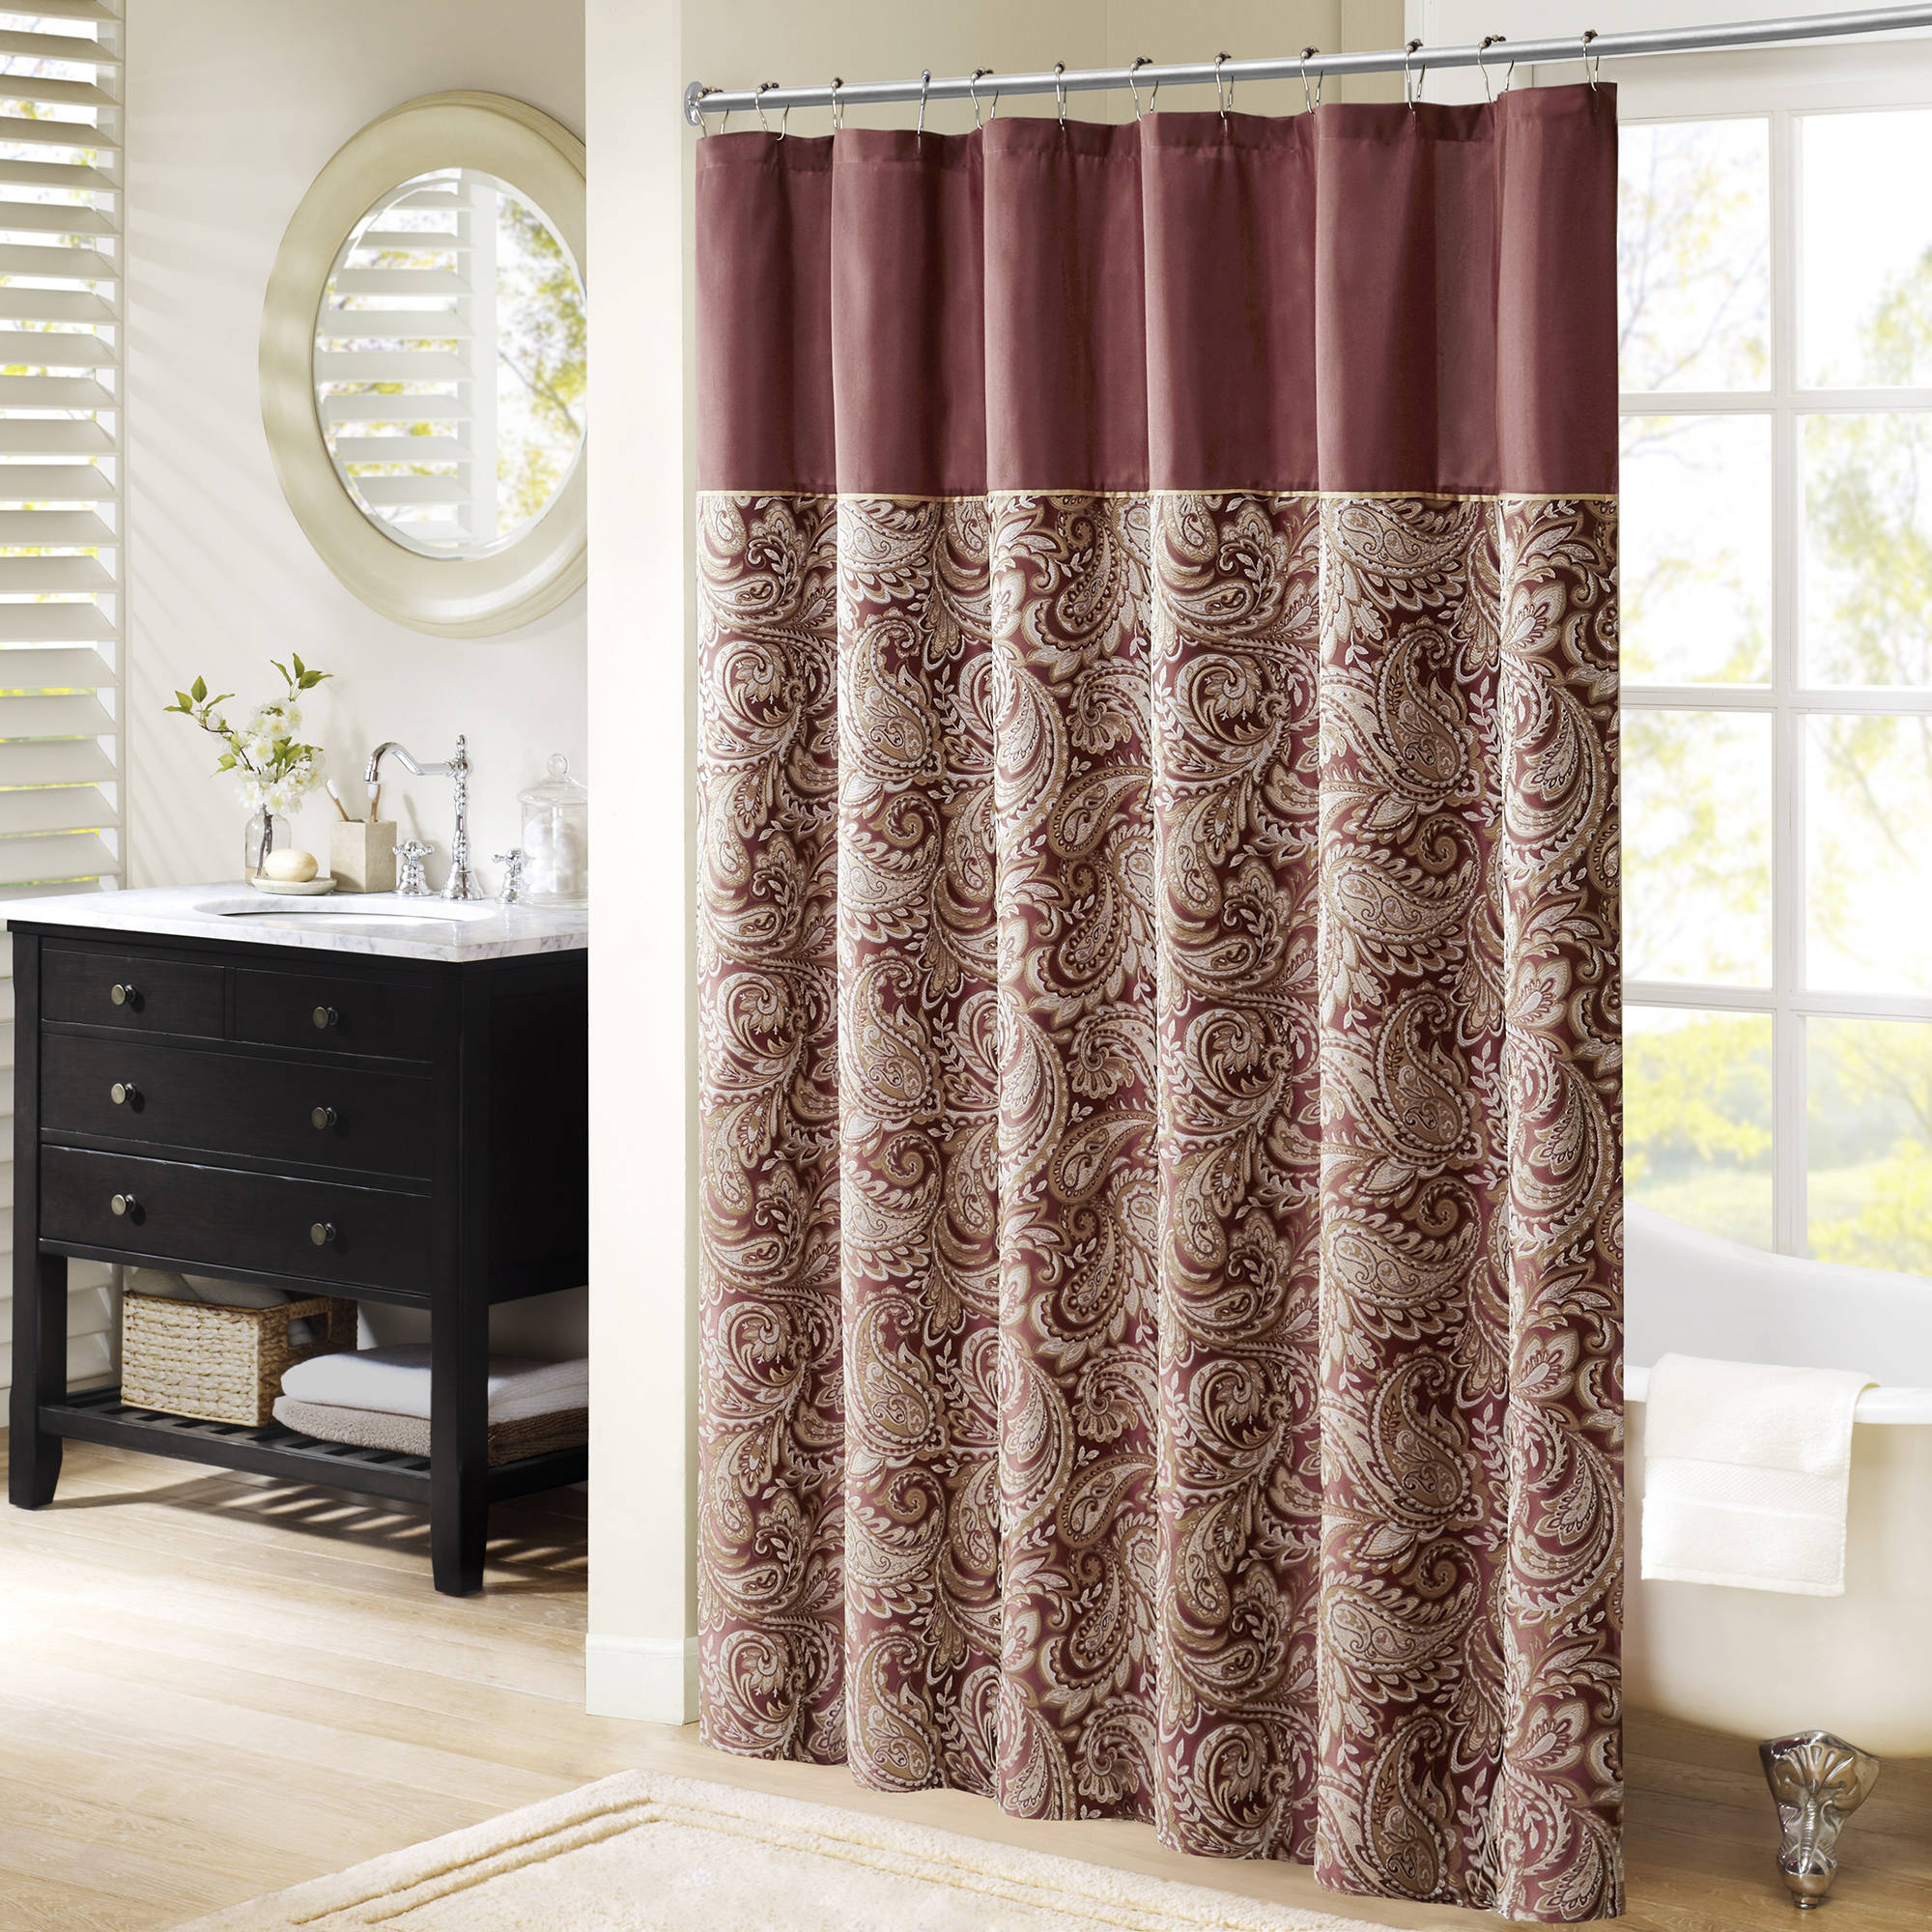 Shower Curtains Walmart Inside Sizing 2000 X 2000